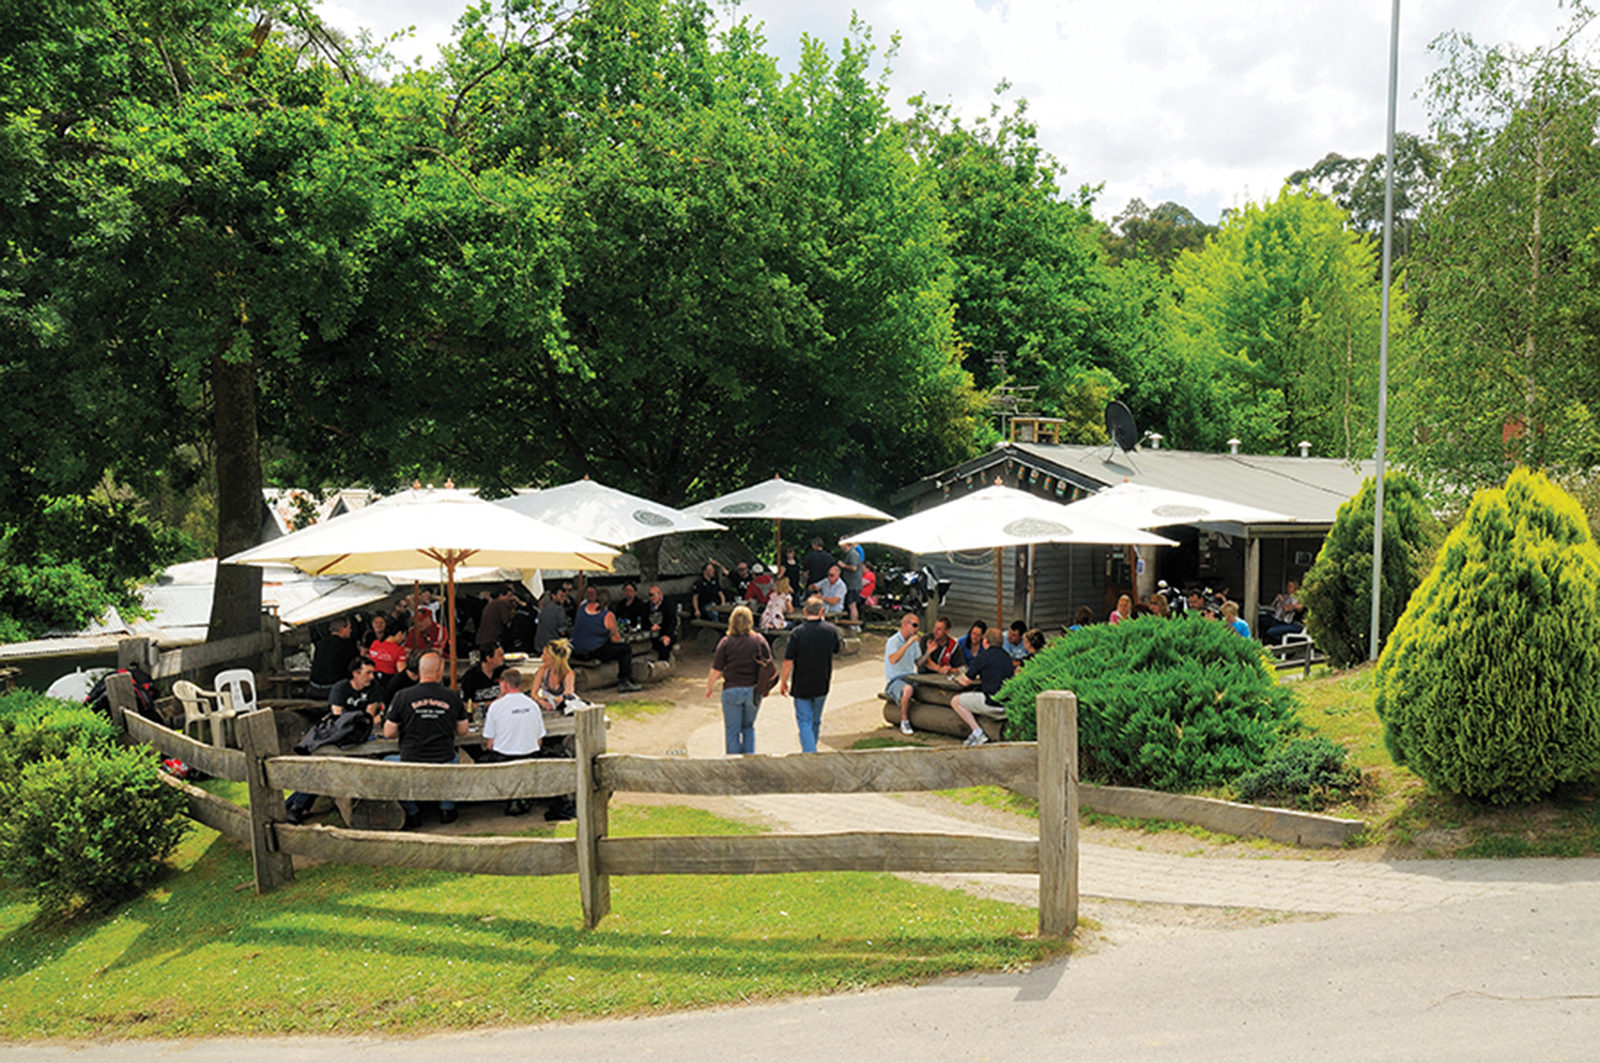 The Outpost Noojee